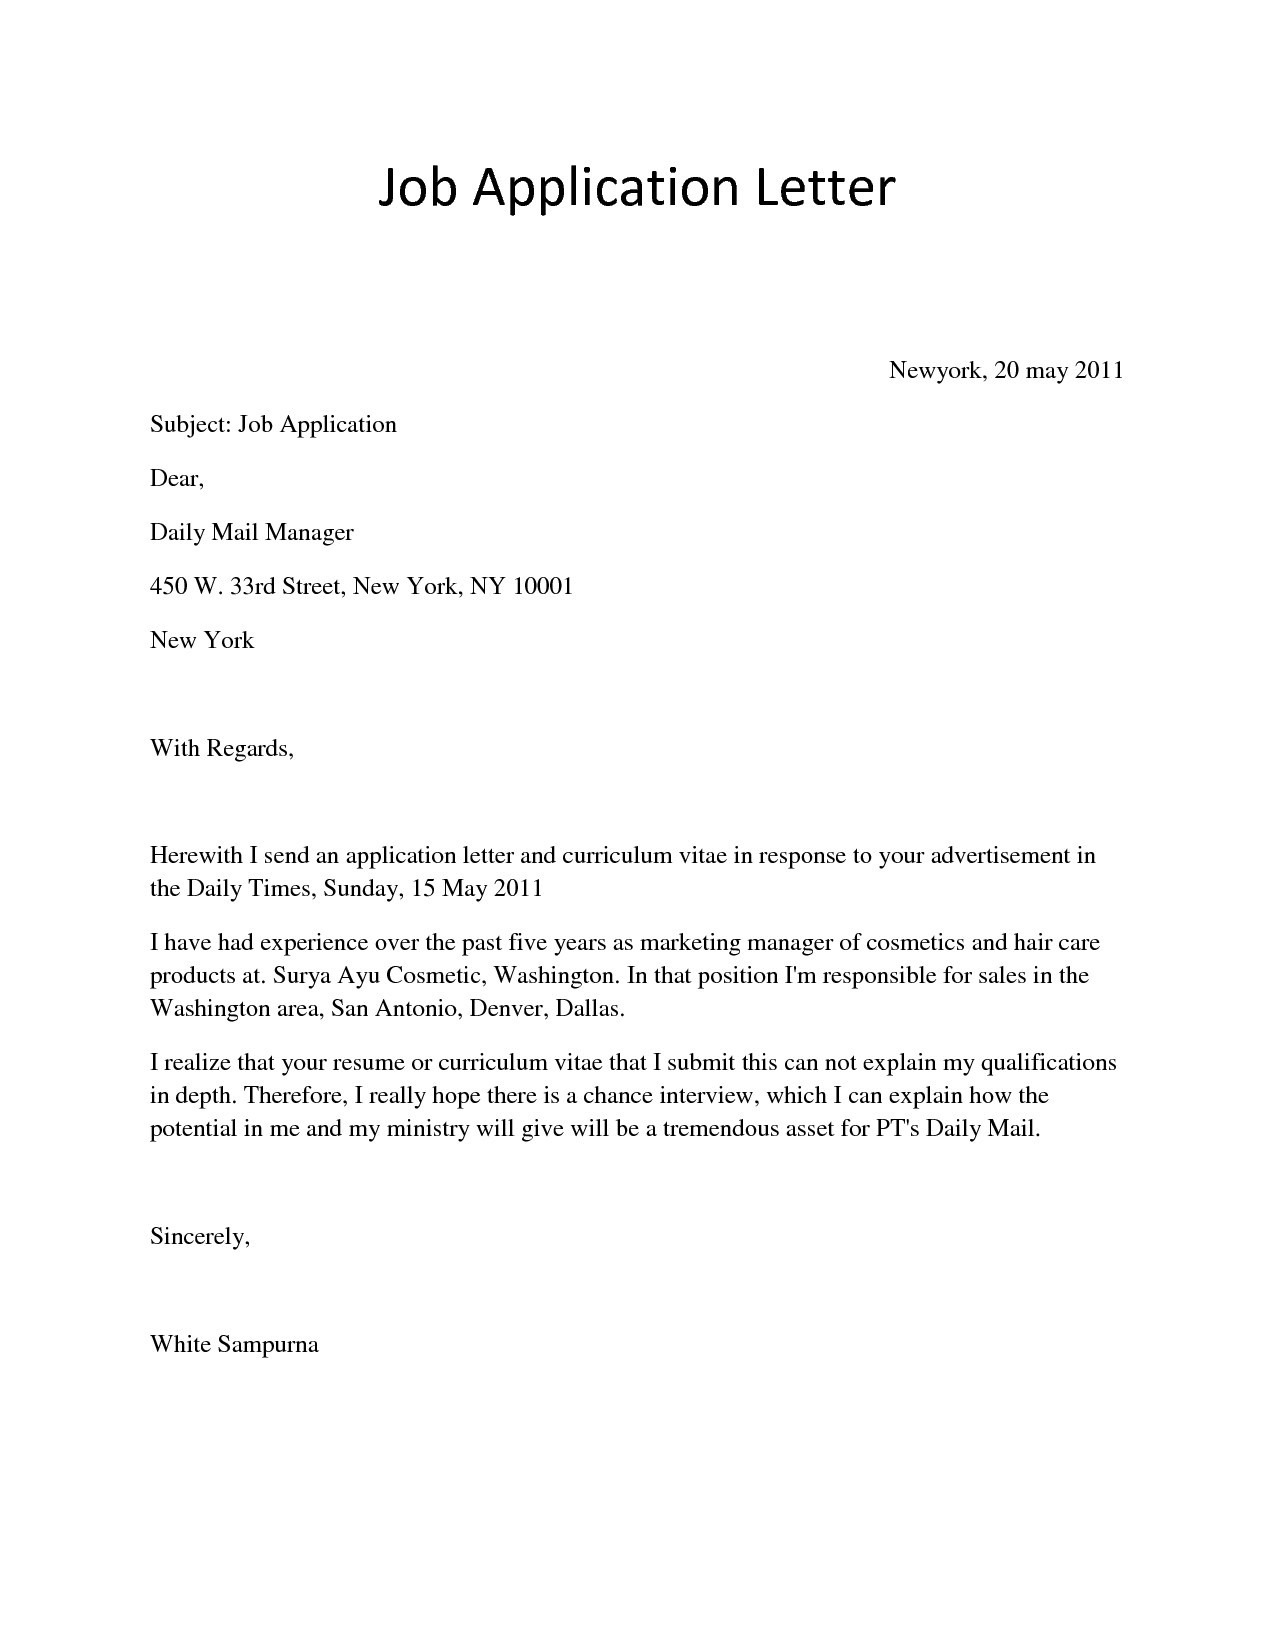 Printable Letter Format Paper Best Of Application Letter For Job with regard to Job Application Letter Format 23486